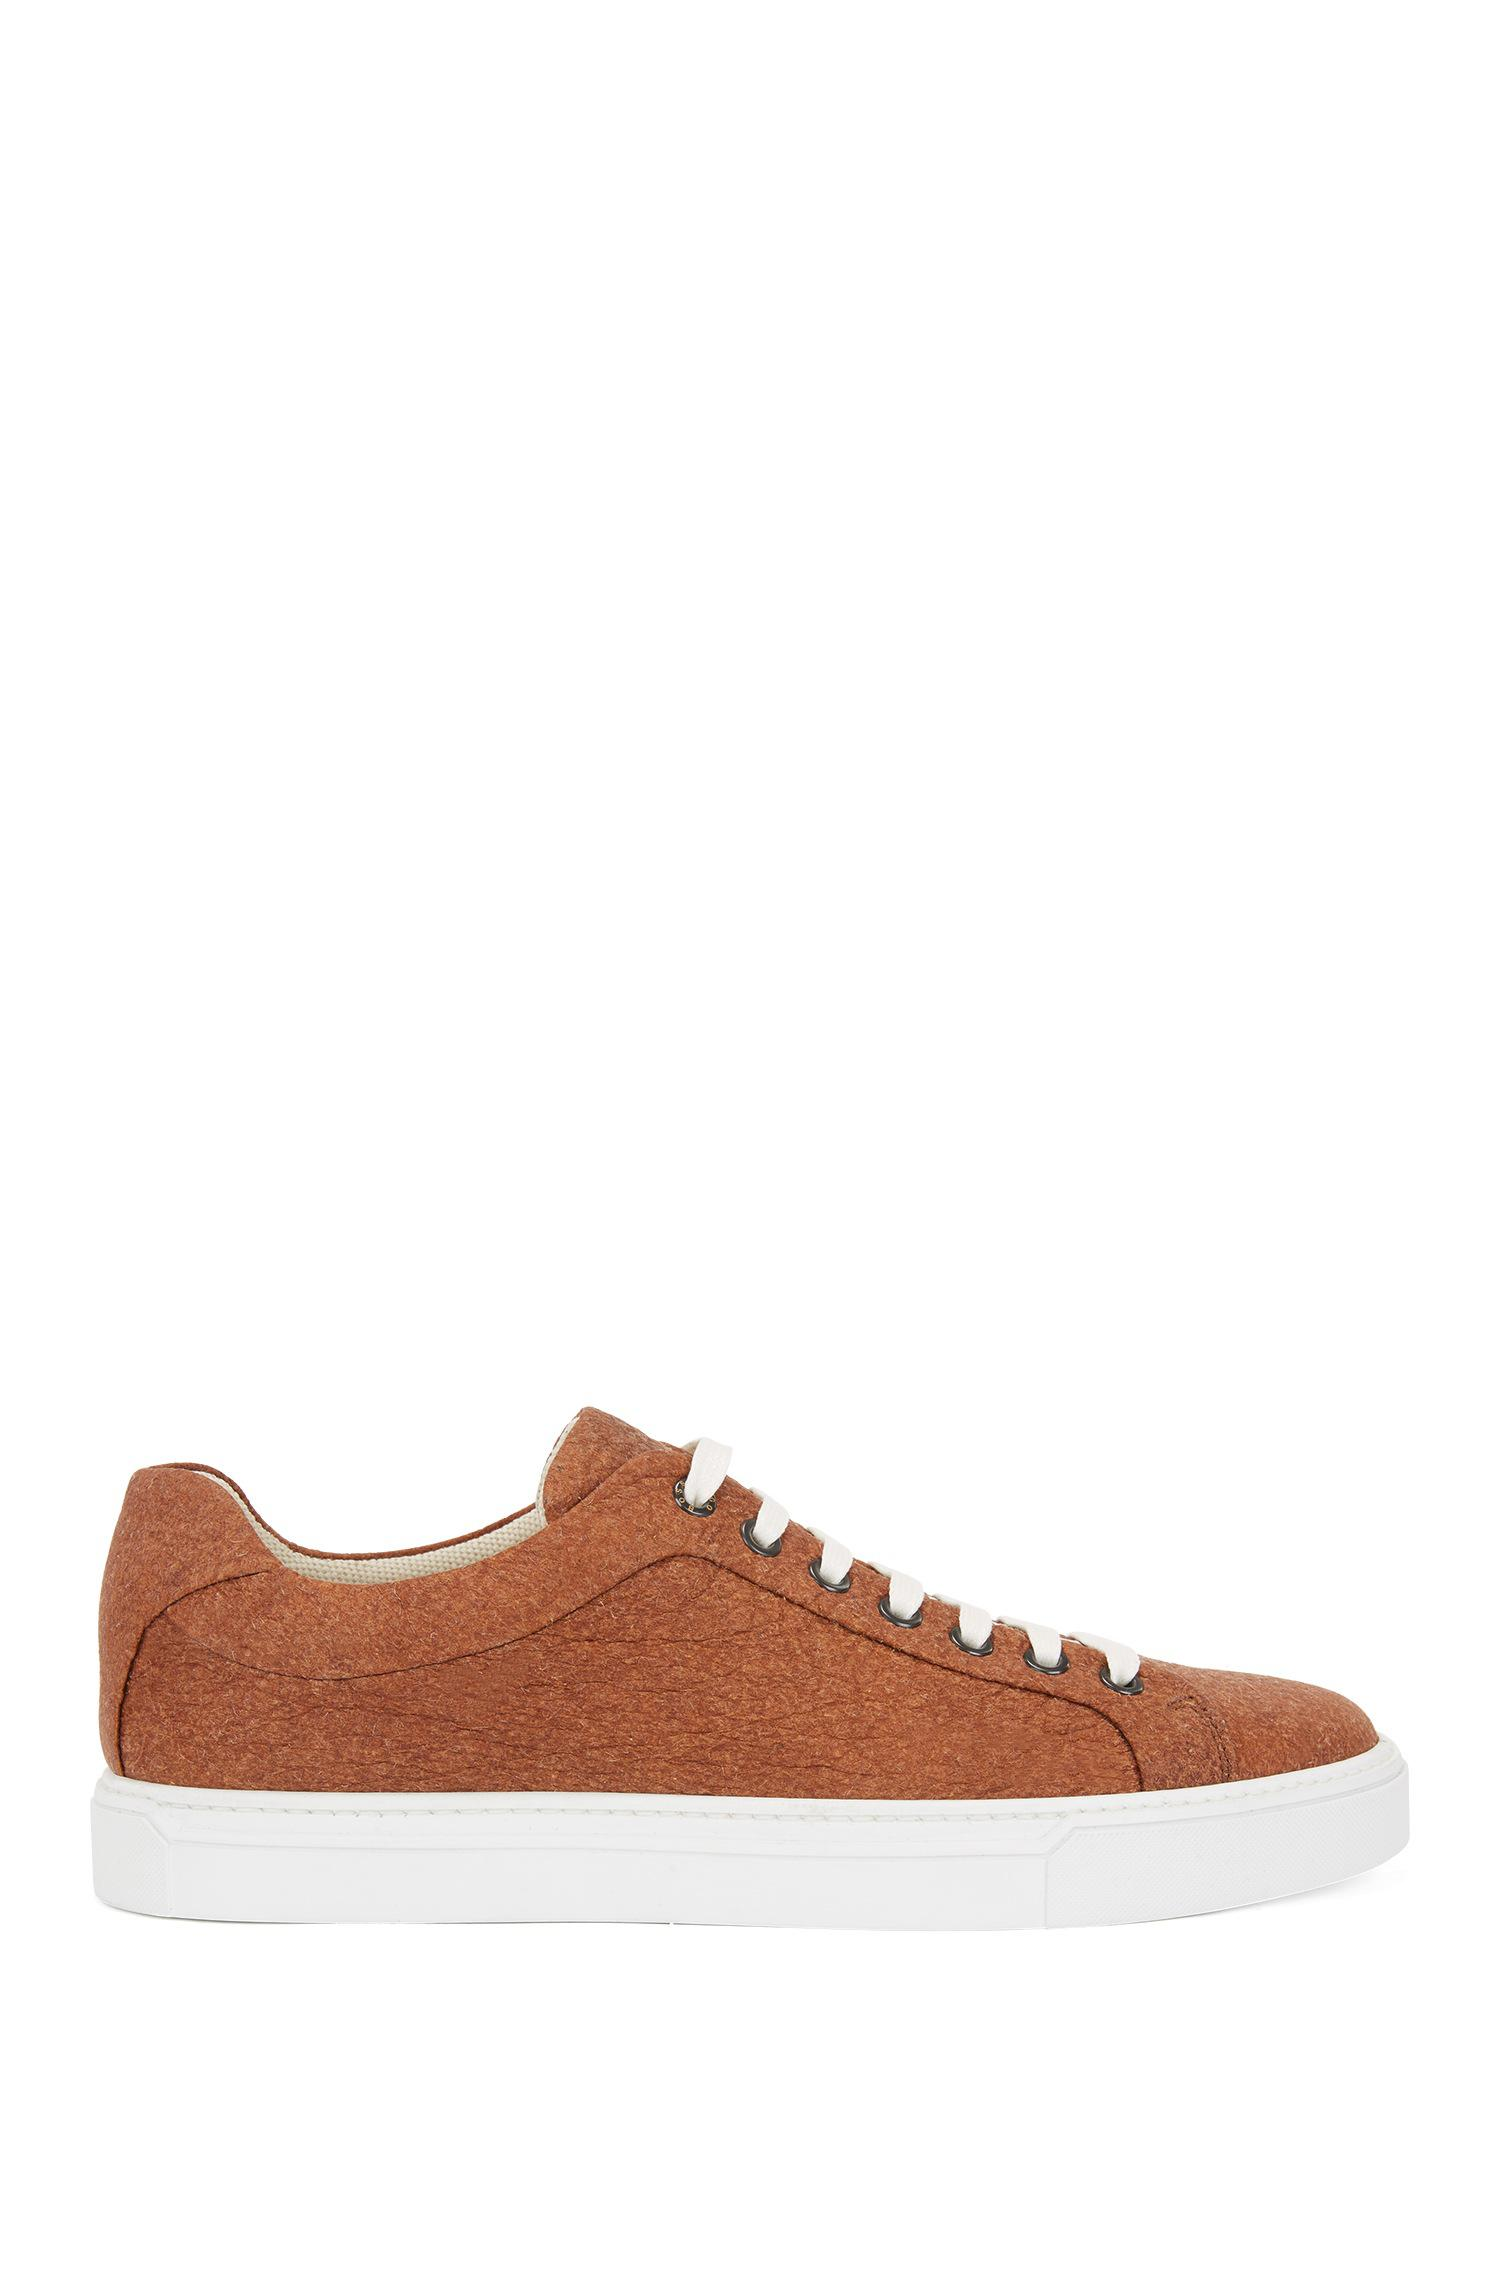 2884eb9d1f5 Lyst - BOSS Limited-edition 100% Vegan Sneakers In Piñatex® in Brown ...